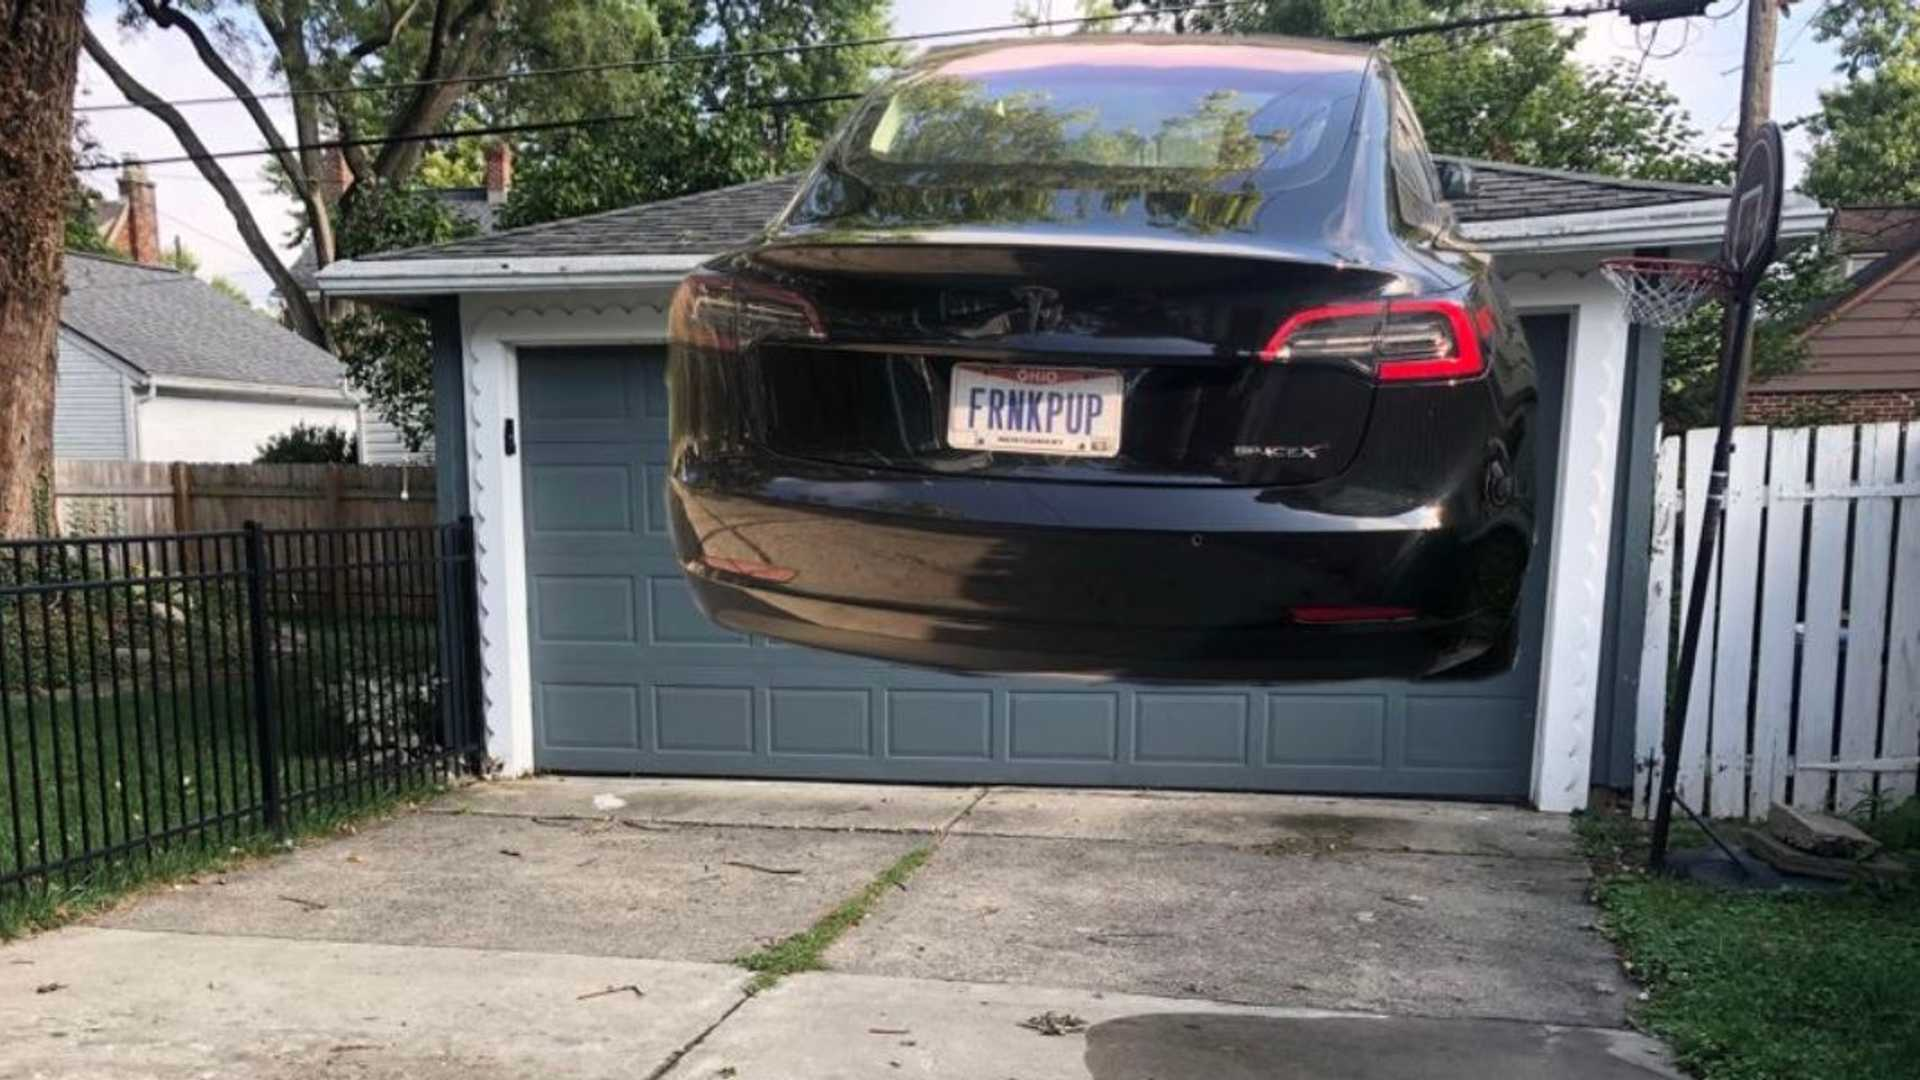 SpaceX Tesla Model 3 Update Makes Car Fly, Hard To Park